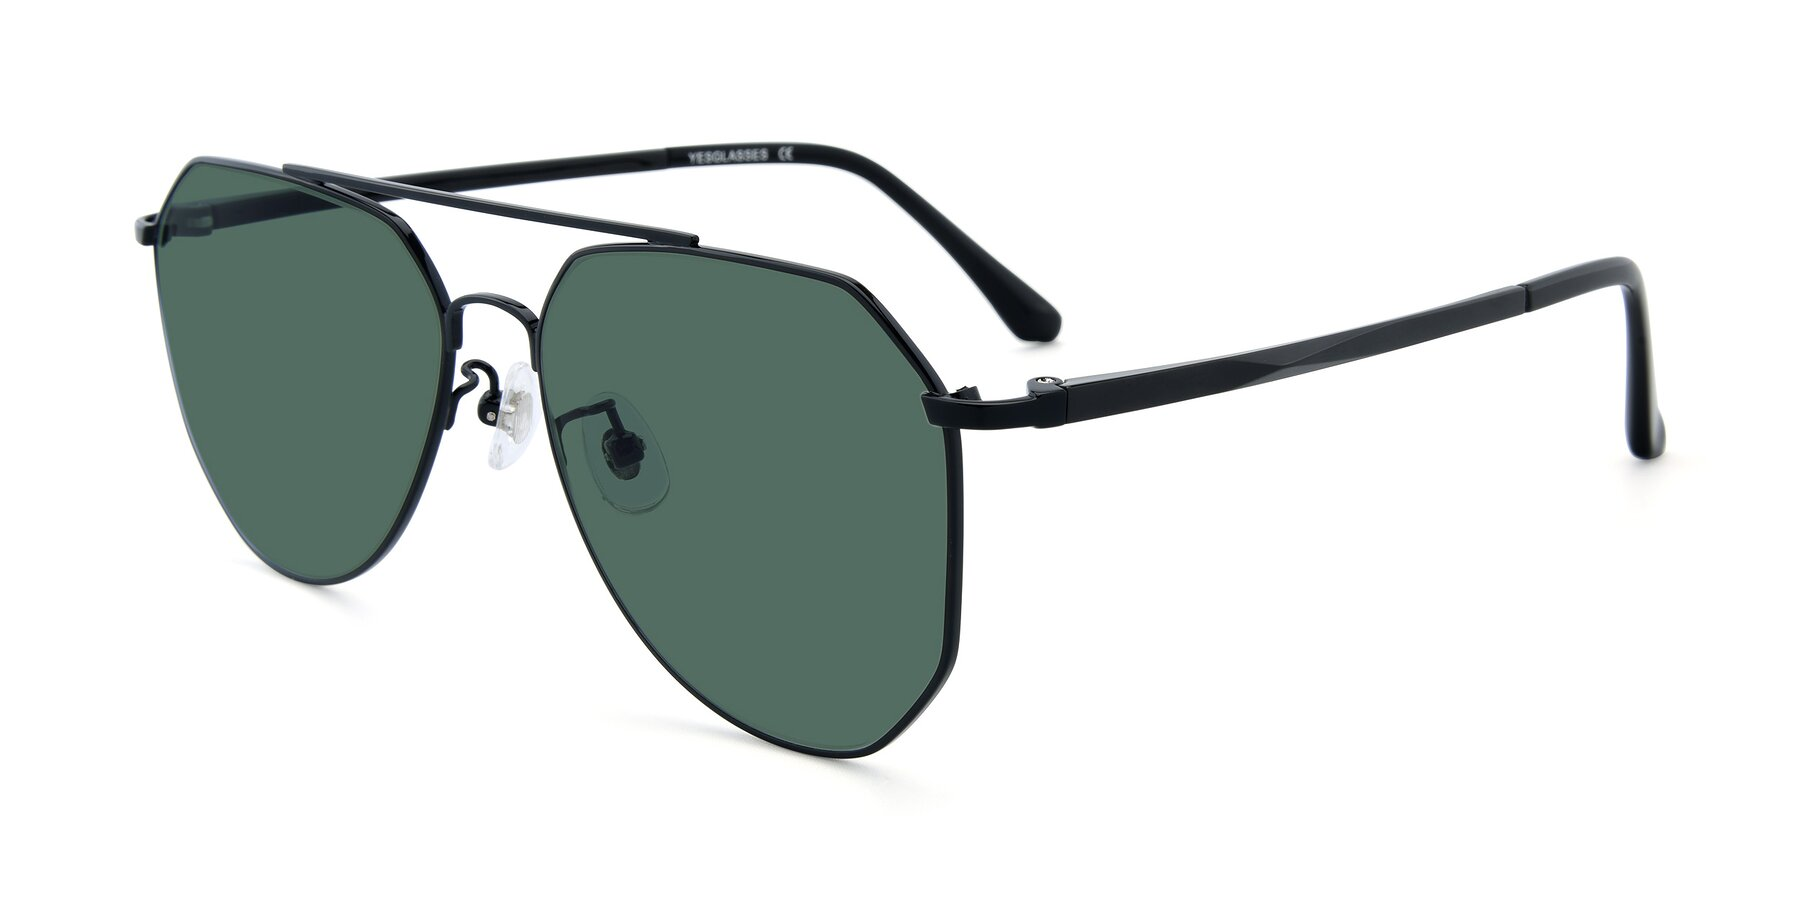 Angle of XC-8040 in Black with Green Polarized Lenses